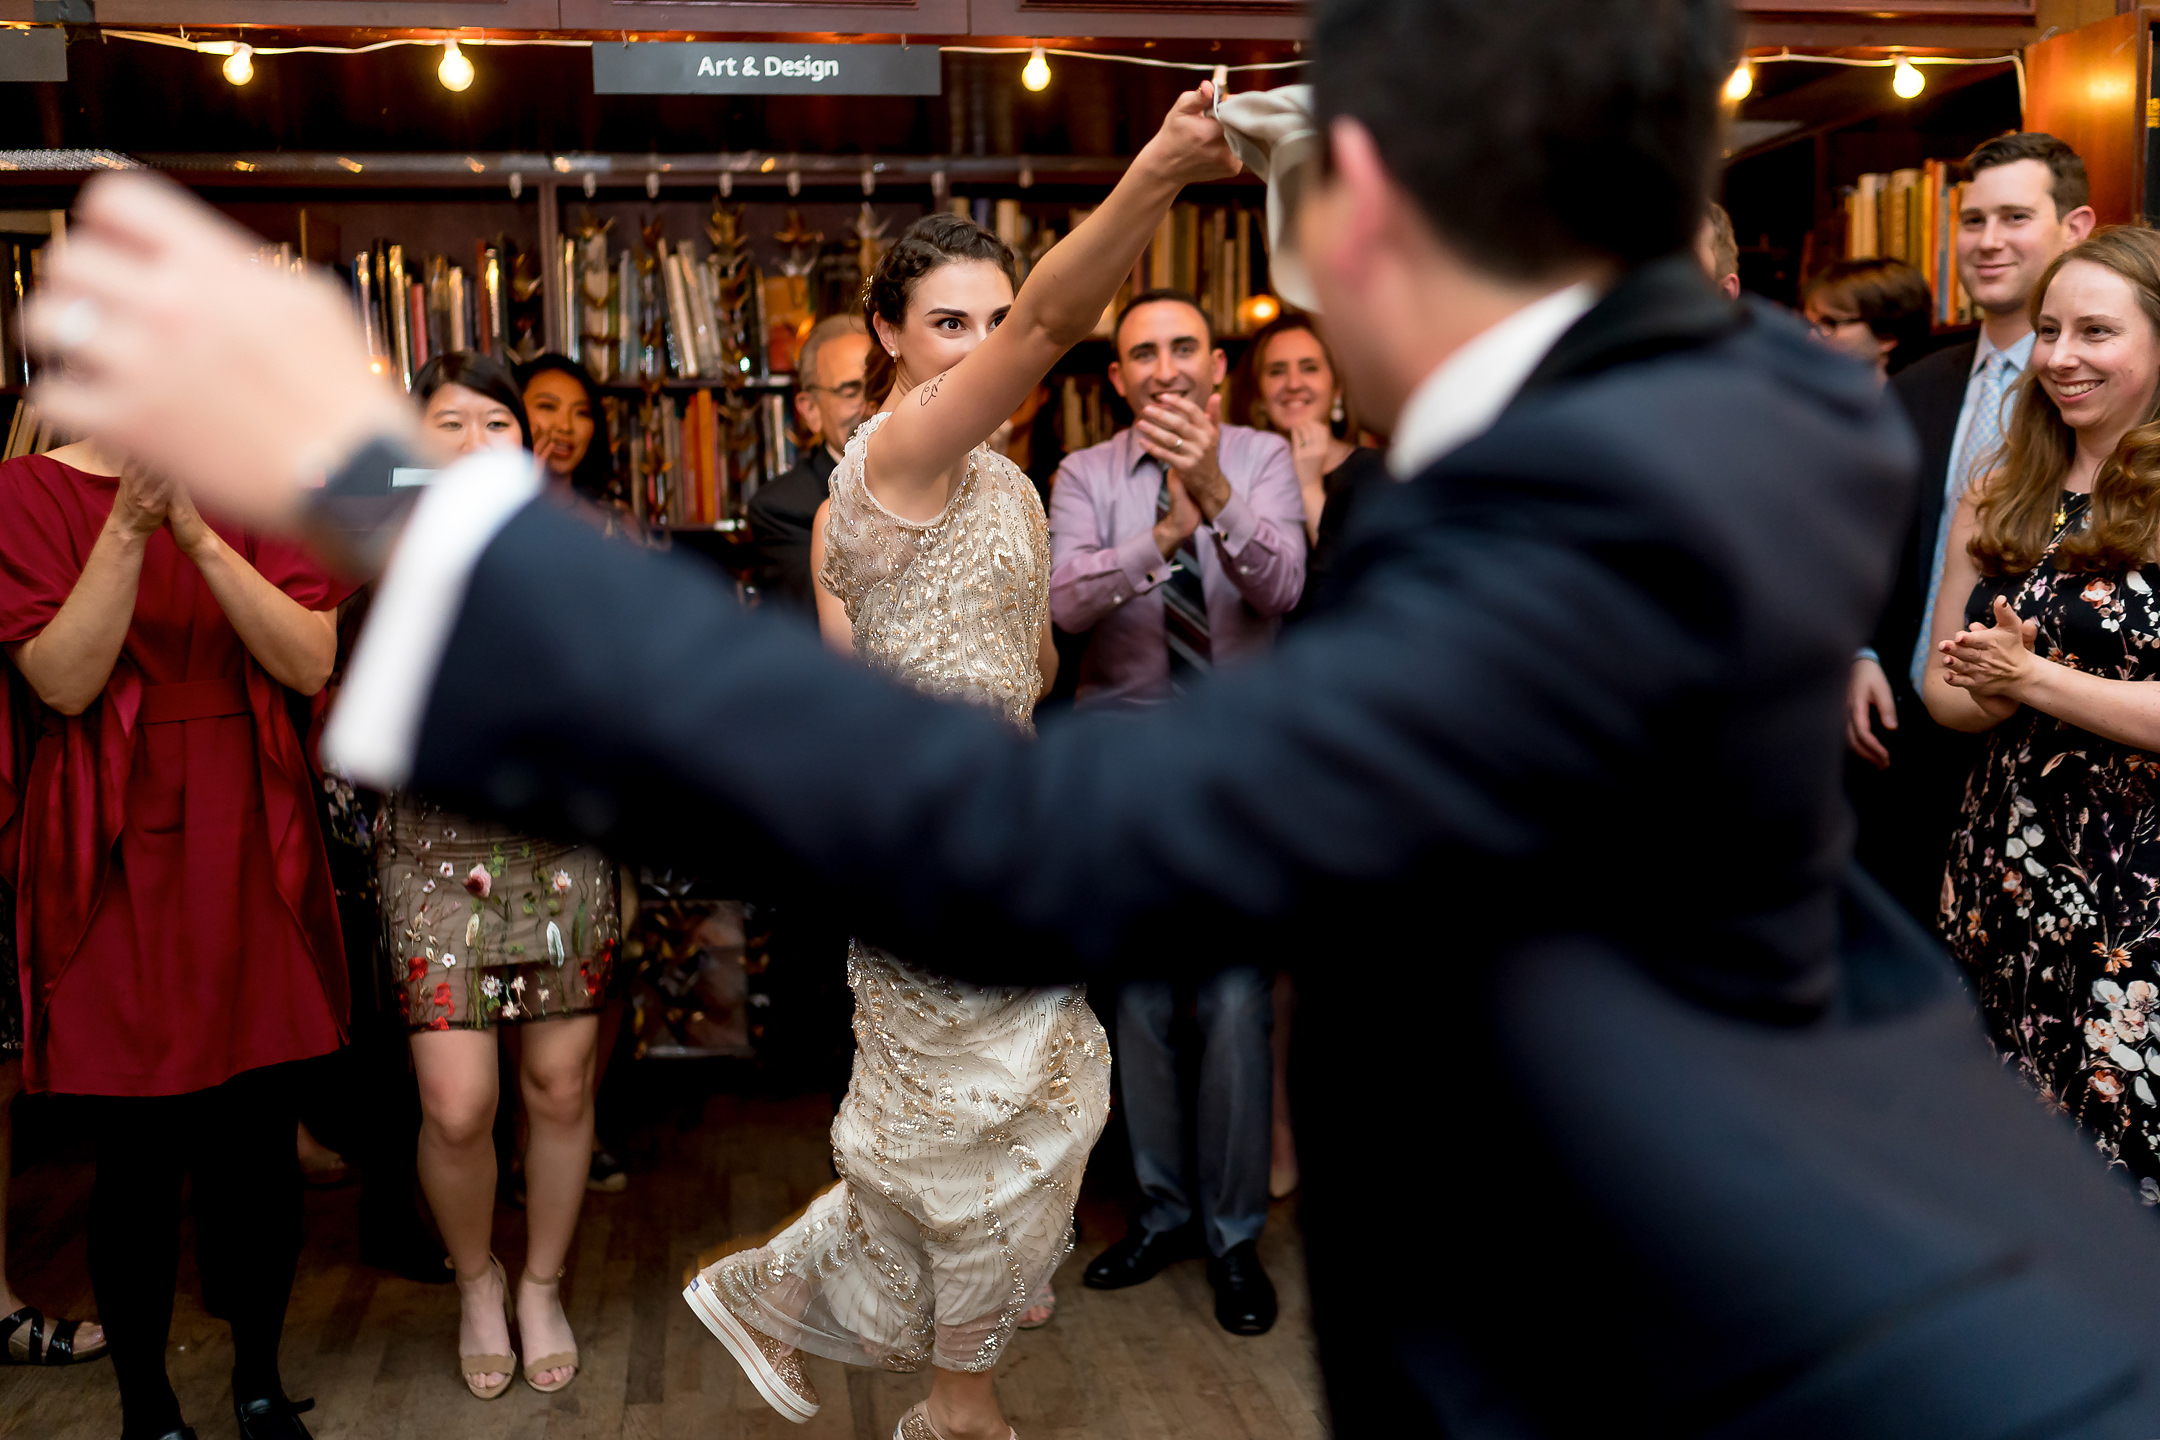 Housing_Works_Cafe_NYC_wedding 35.jpg